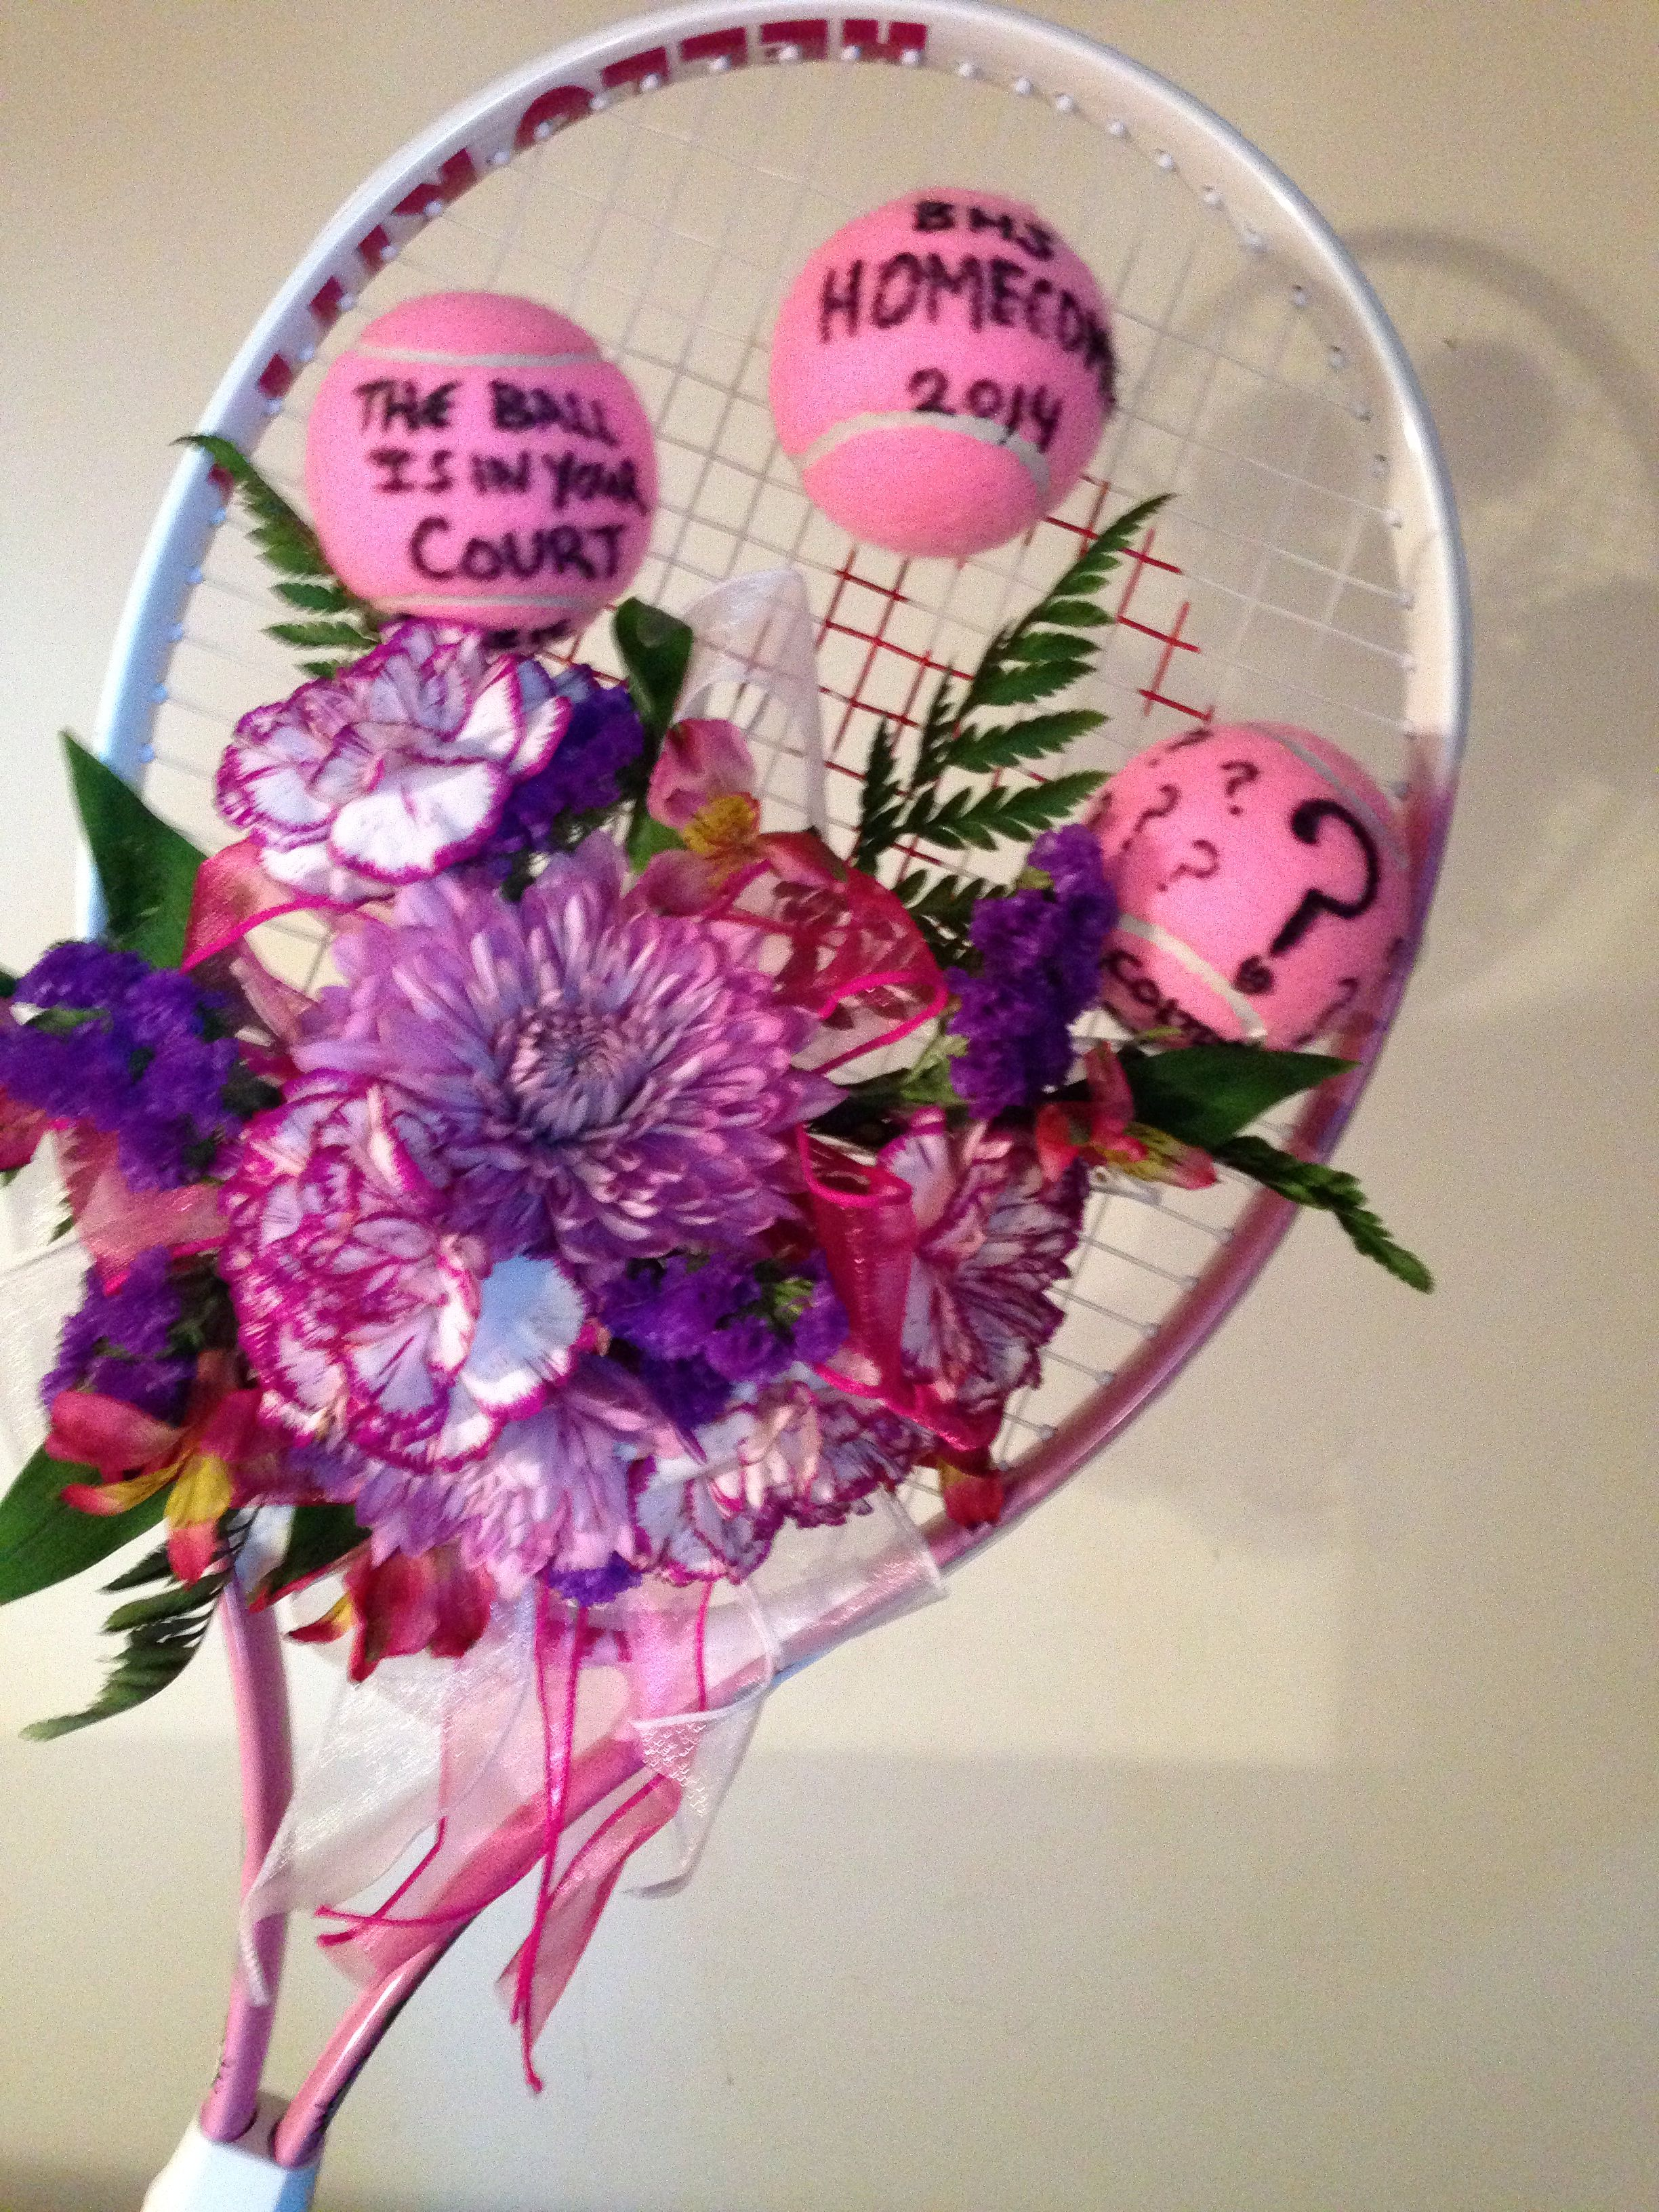 His Date Is A Tennis Playerte Homecoming Idea!